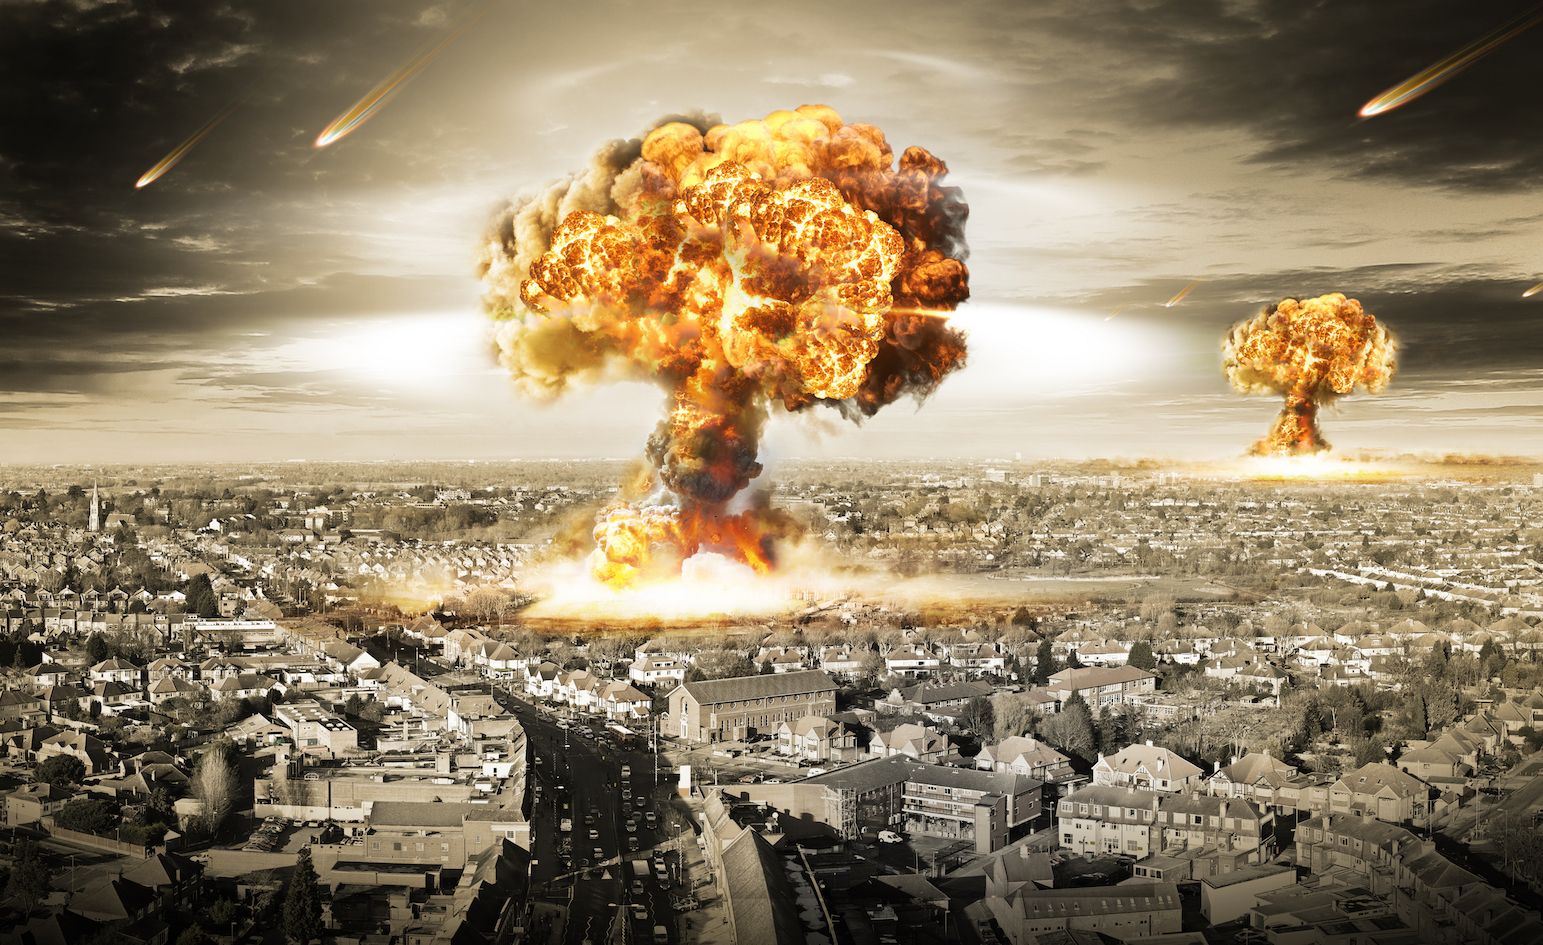 A new study has found that the use of 100 nuclear weapons would put a nation past its tipping point and kill millions.